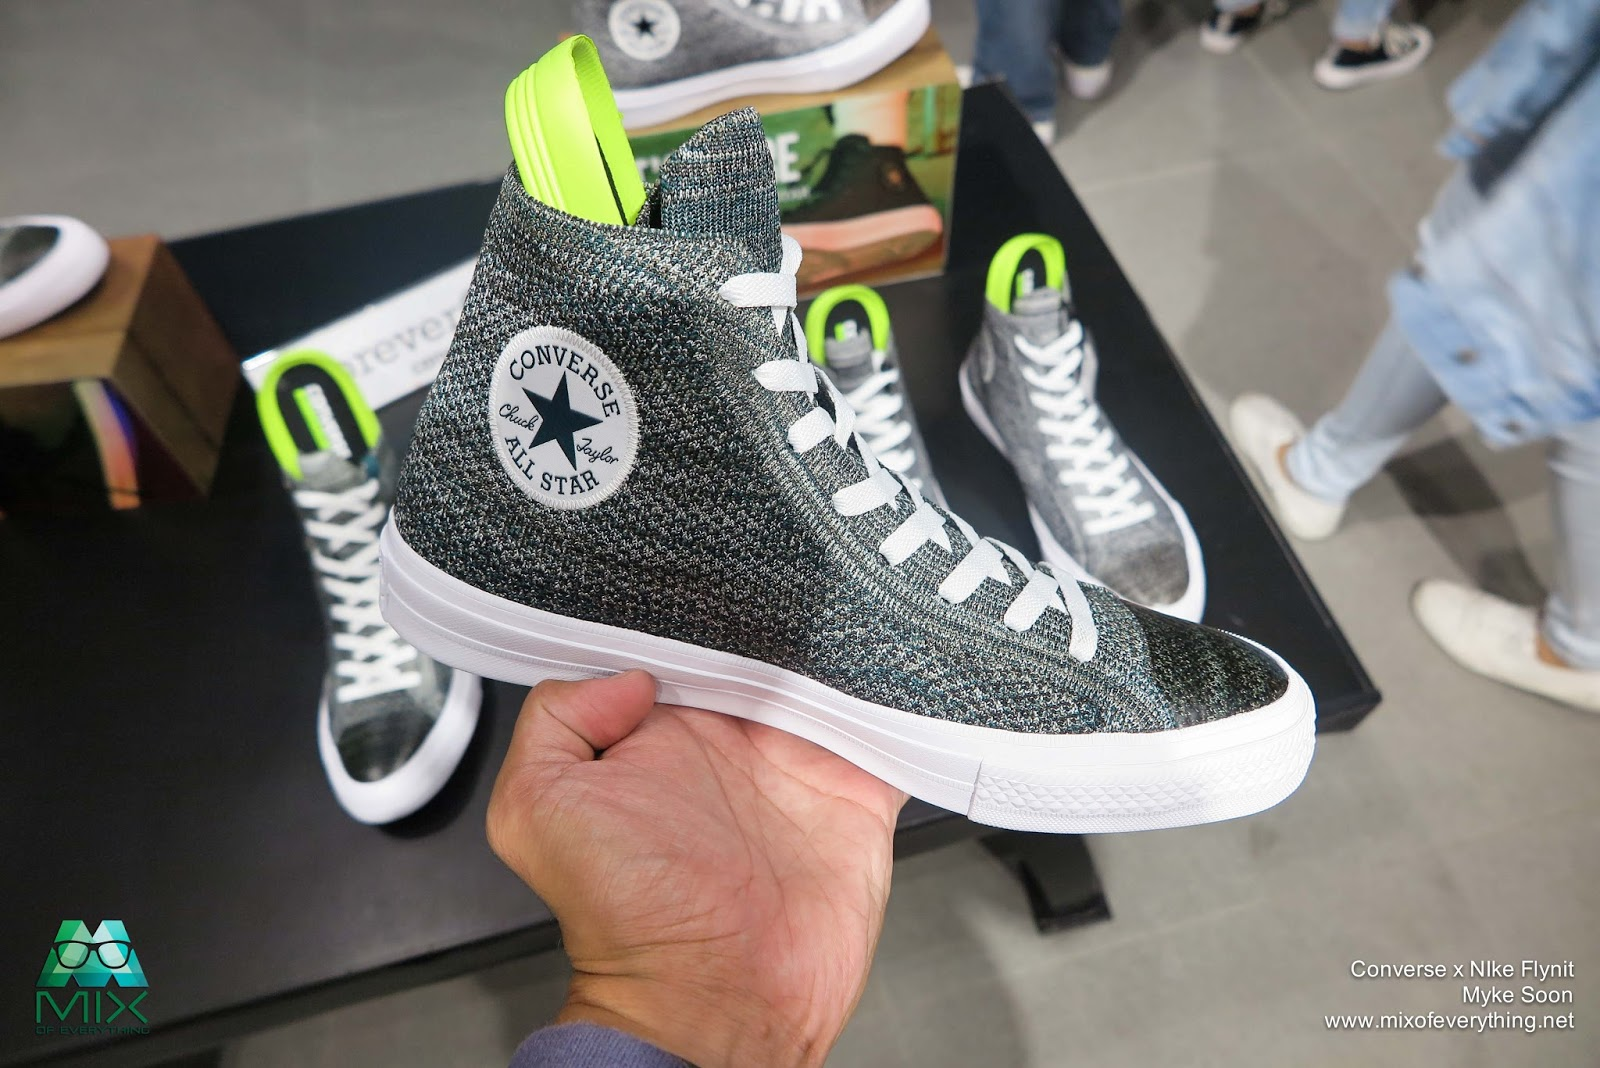 5a6f0e7e4edc Chuck Taylor All Star x Nike Flyknit - Hello! Welcome to my blog!